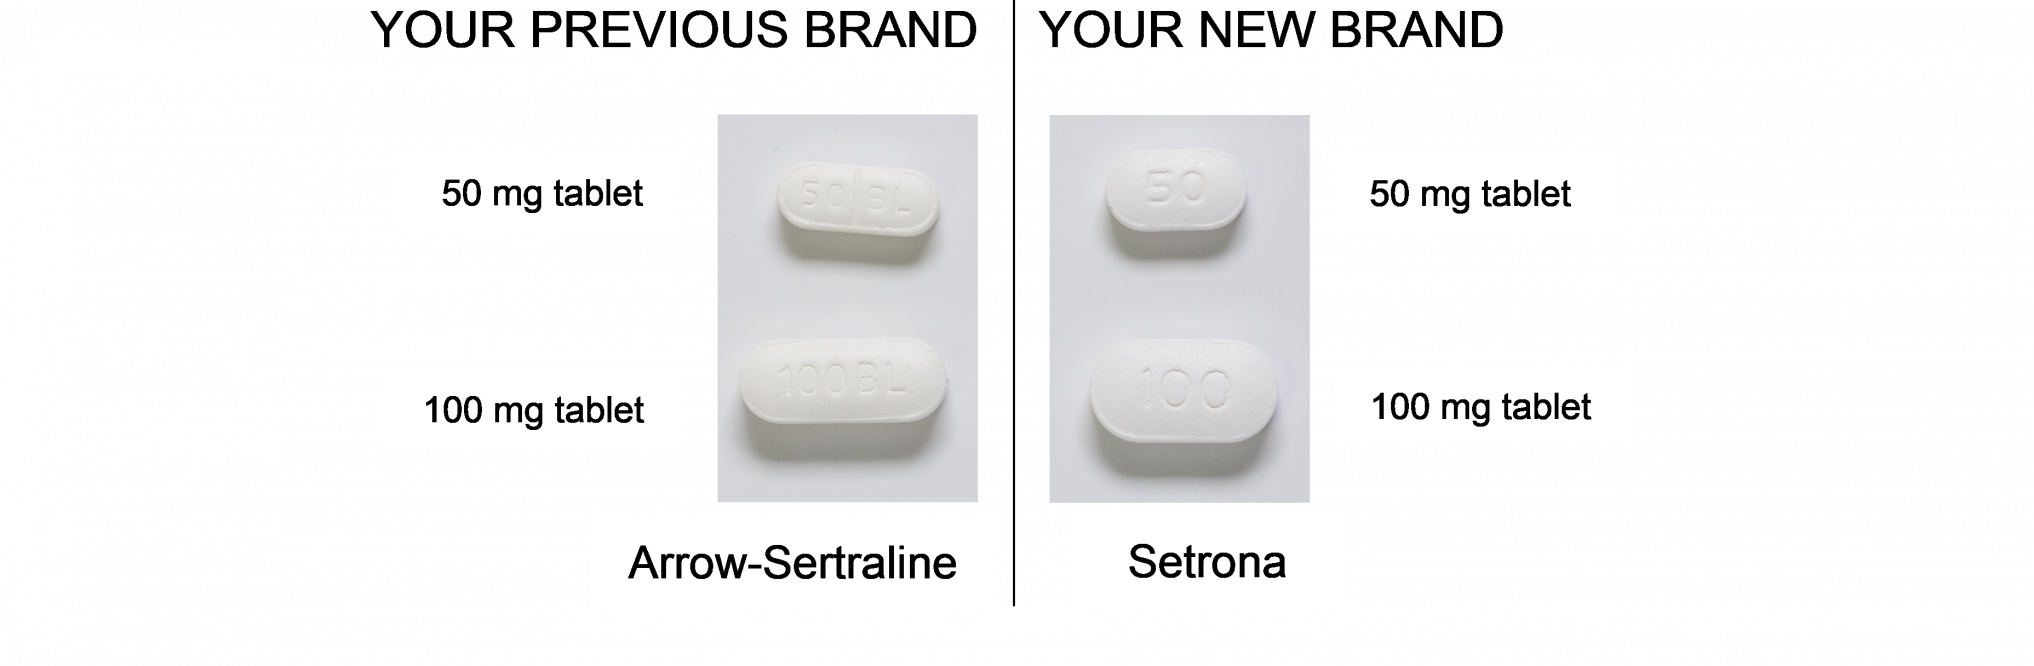 Setrona tablets are white and oblong (like the Arrow-Sertraline tablets), but they are shorter and broader than the Arrow. .